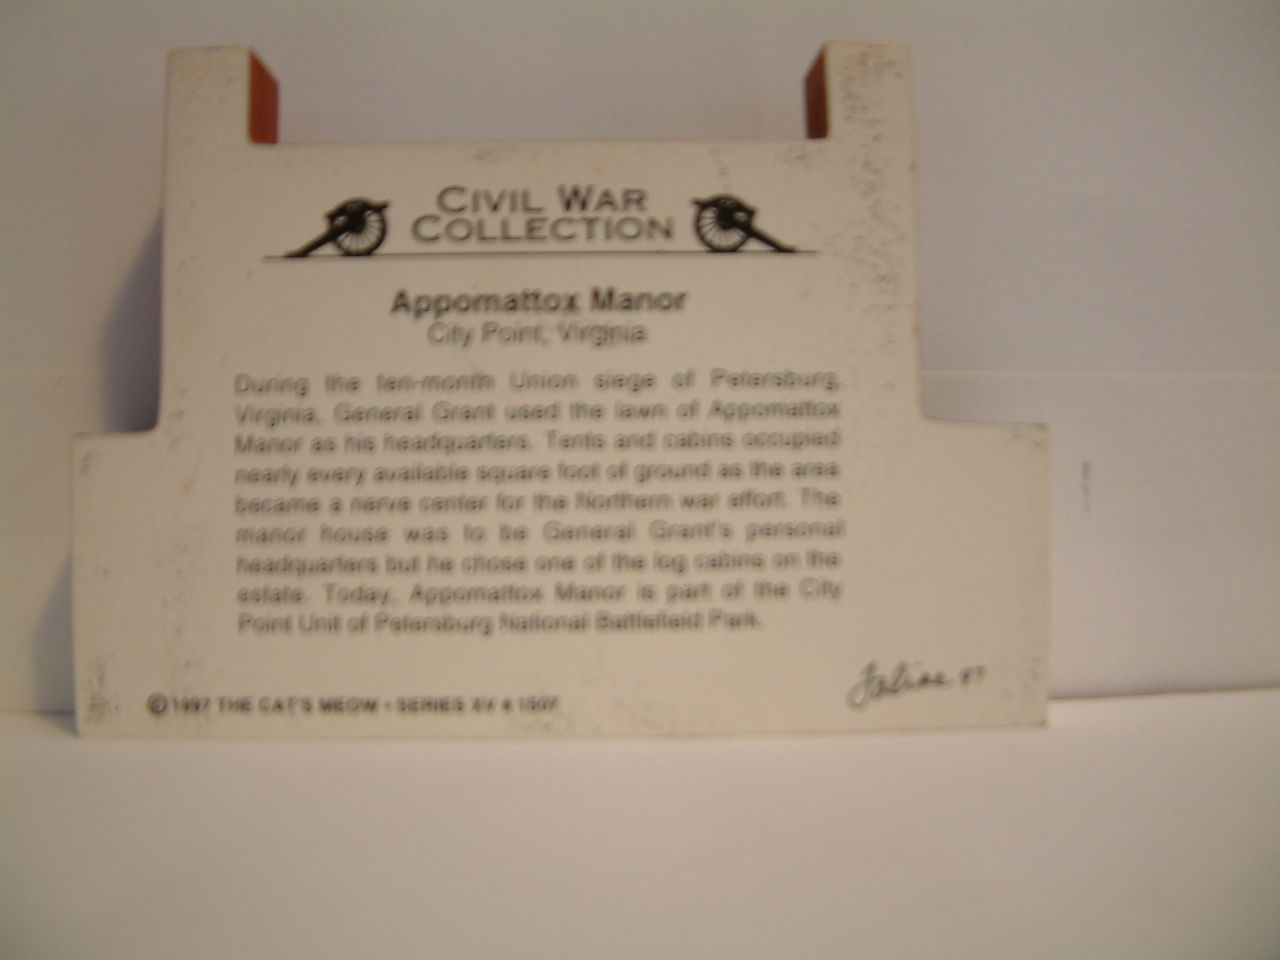 Cats Meow 1997 Civil War Collection Appomattox Manor 1997 image 2